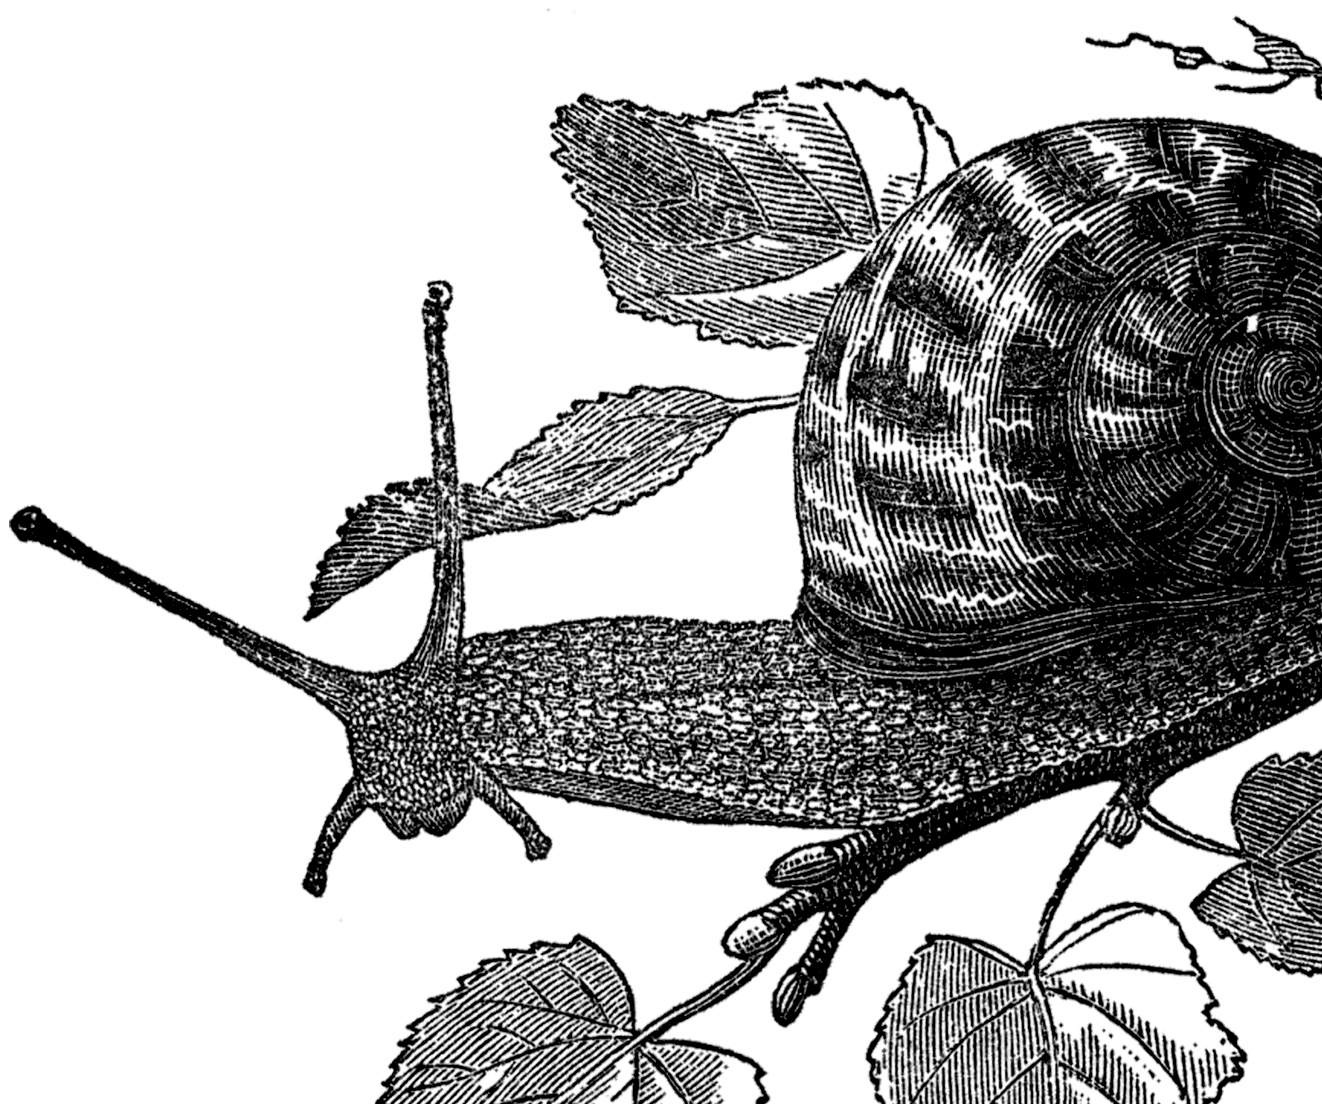 Free Public Domain Snail Images - The Graphics Fairy